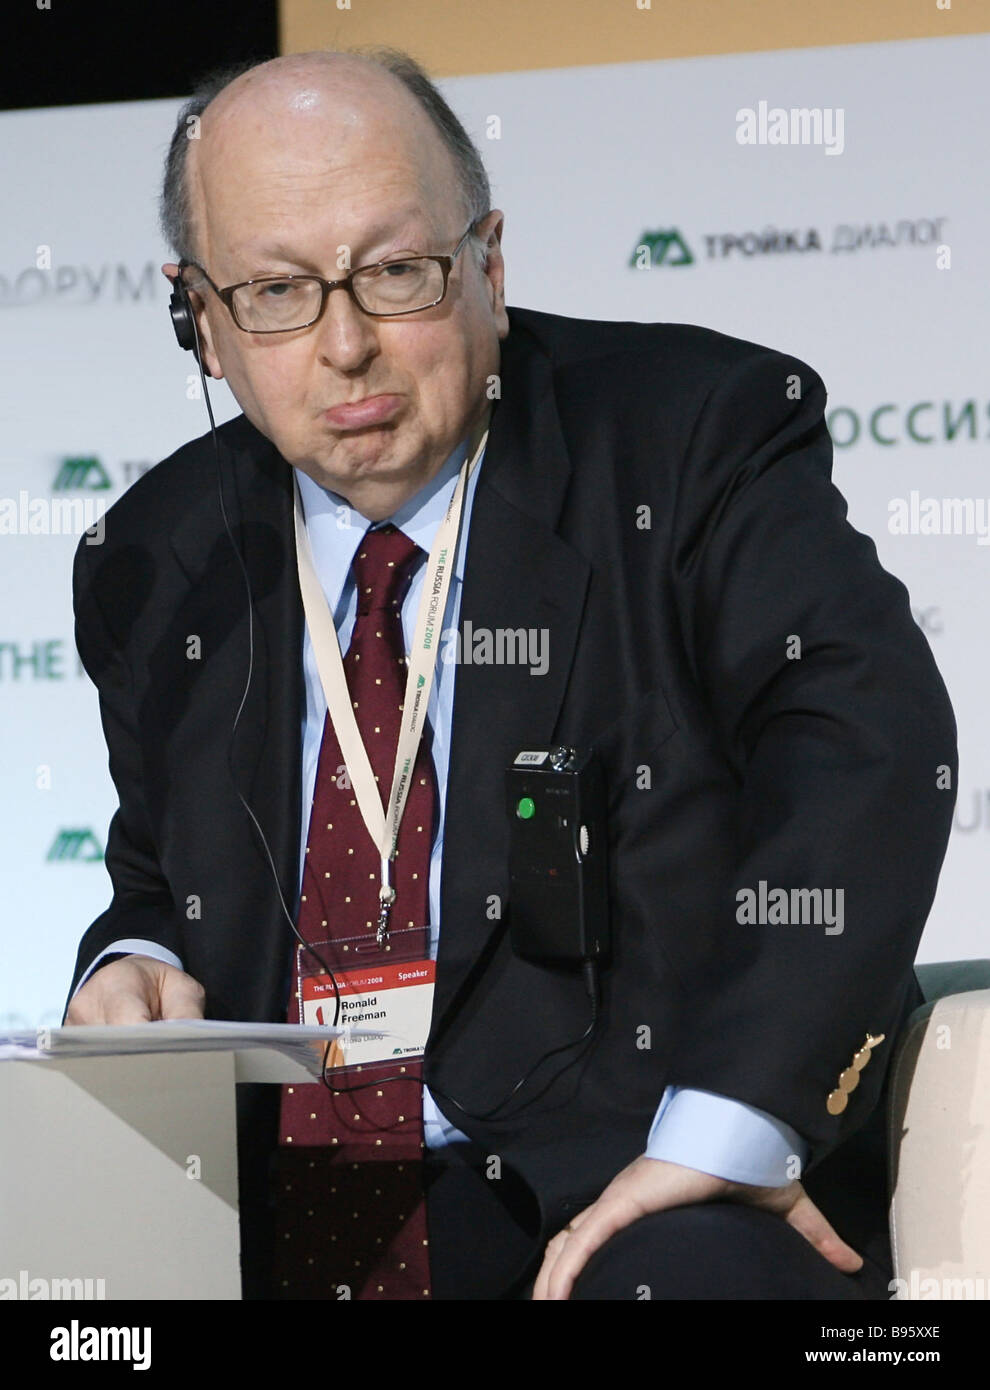 Ronald Freeman a member of the Troika Dialog board of directors at the International Economic Forum Forum Russia - Stock Image